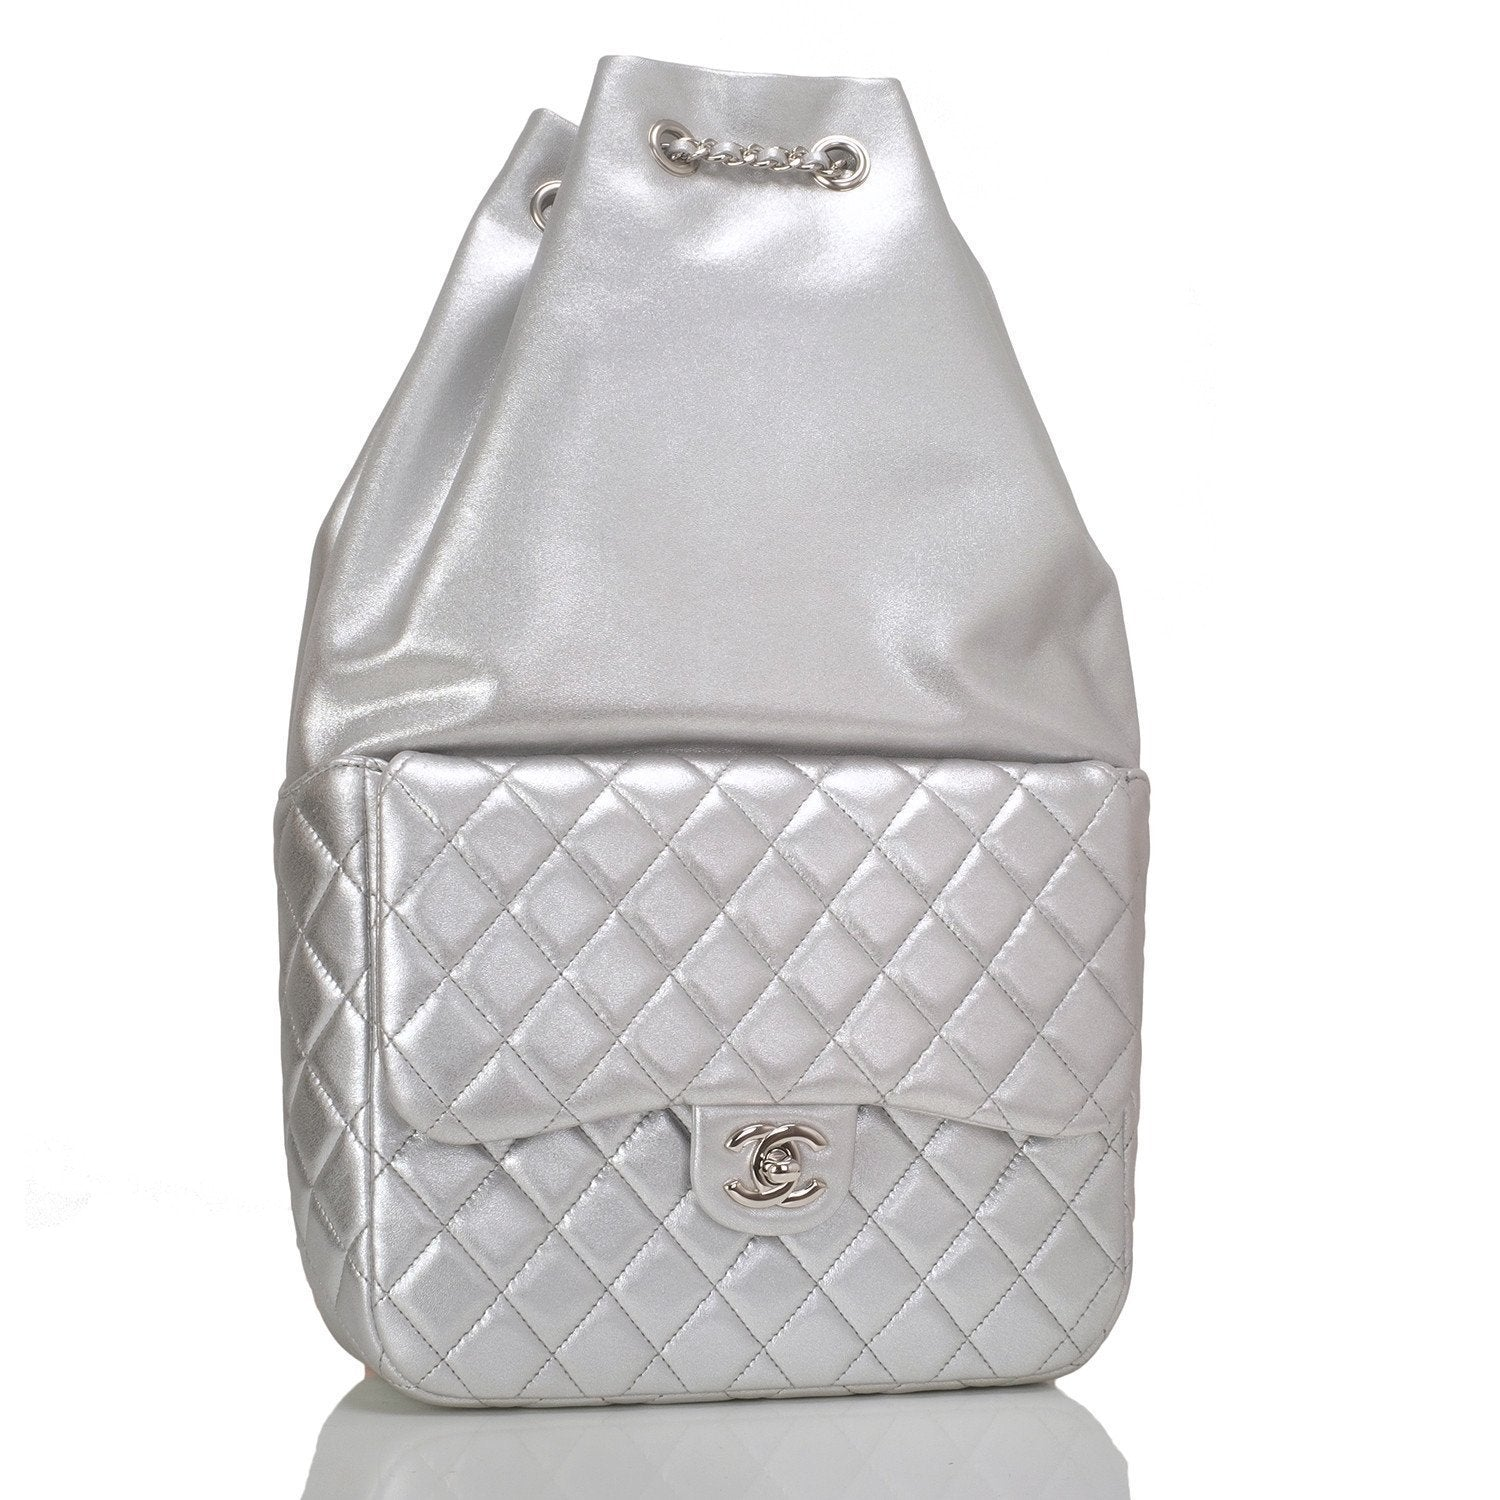 Chanel Silver Metallic Lambskin Large Backpack Handbags